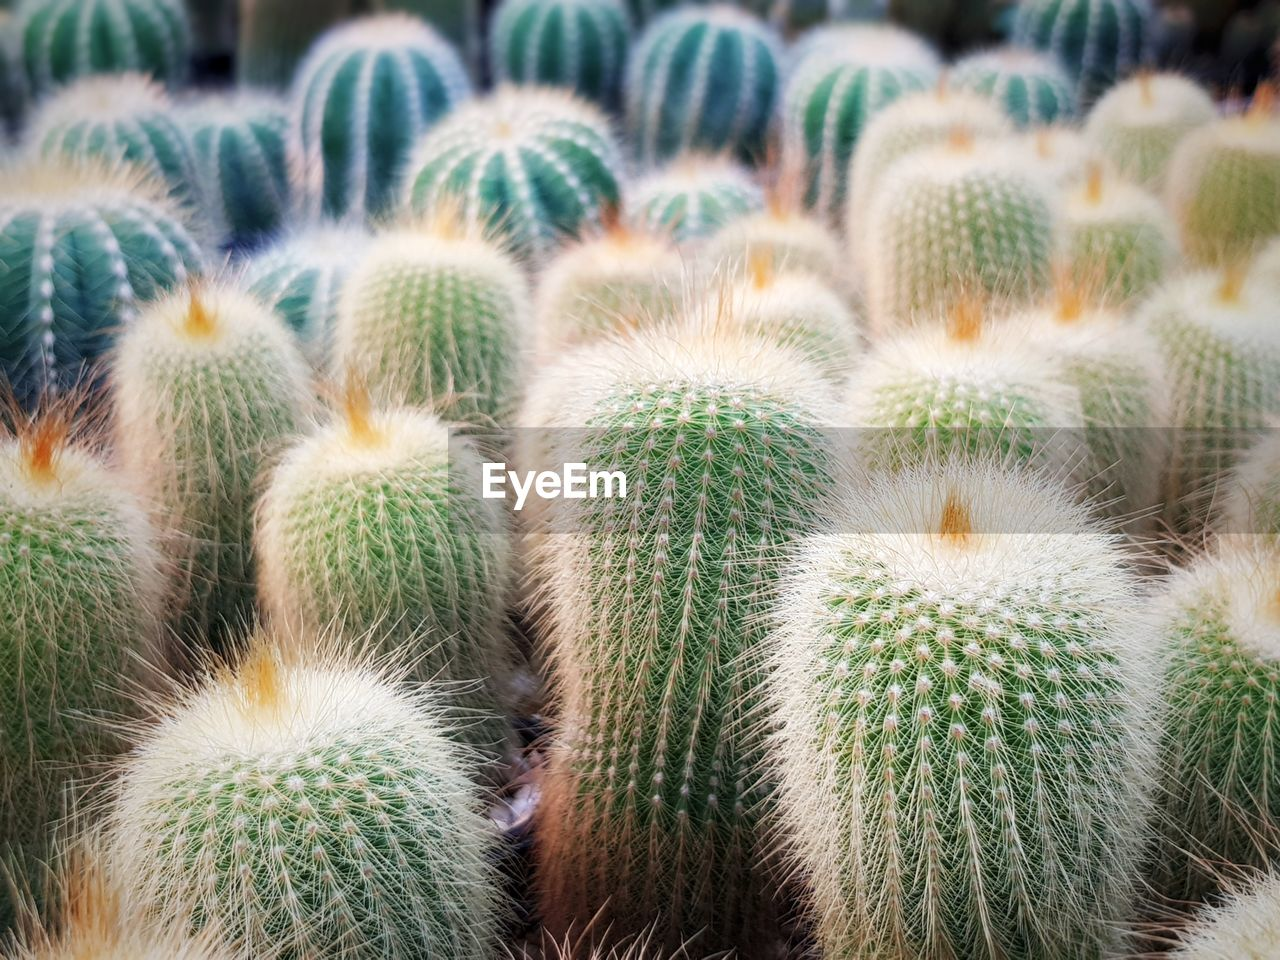 succulent plant, cactus, thorn, growth, no people, green color, plant, sharp, close-up, barrel cactus, nature, spiked, focus on foreground, full frame, potted plant, beauty in nature, day, outdoors, backgrounds, land, climate, arid climate, ecosystem